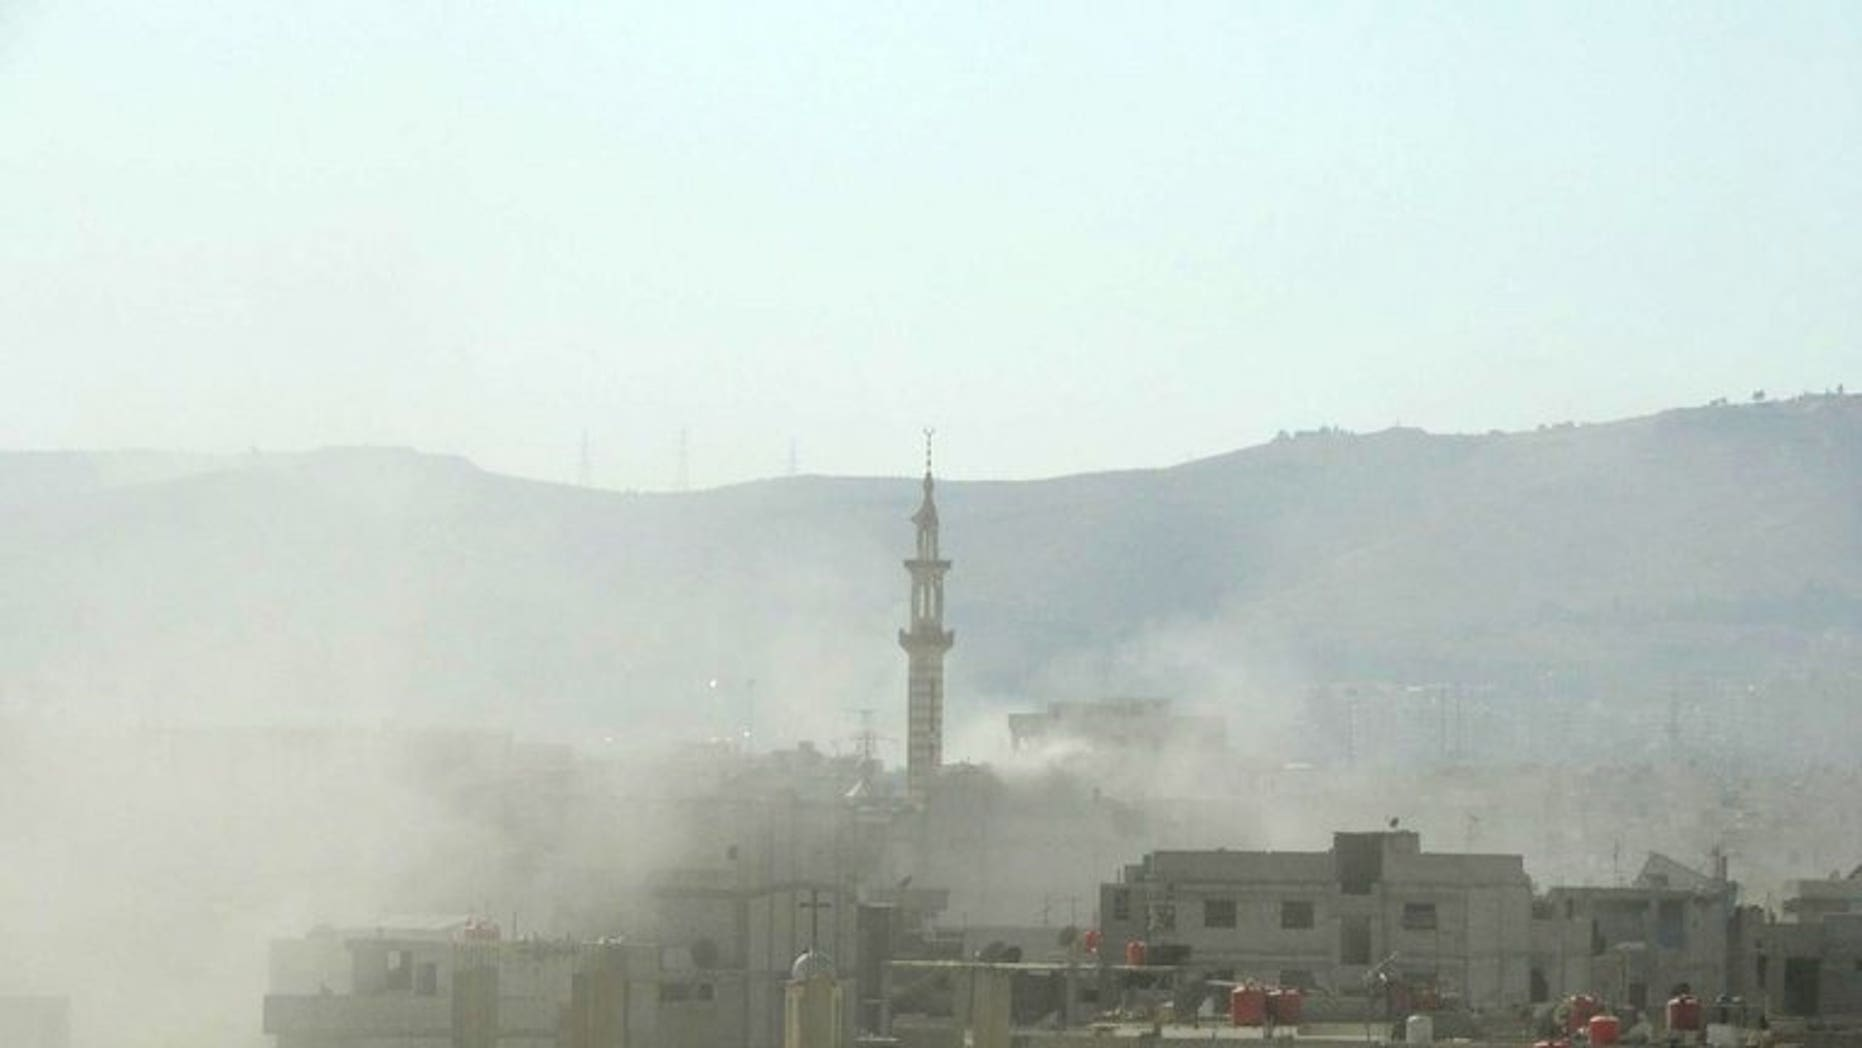 A handout image released by the Syrian opposition's Shaam News Network shows smoke above buildings following what Syrian rebels claim to be a toxic gas attack by pro-government forces in eastern Ghouta, on the outskirts of Damascus on August 21, 2013.